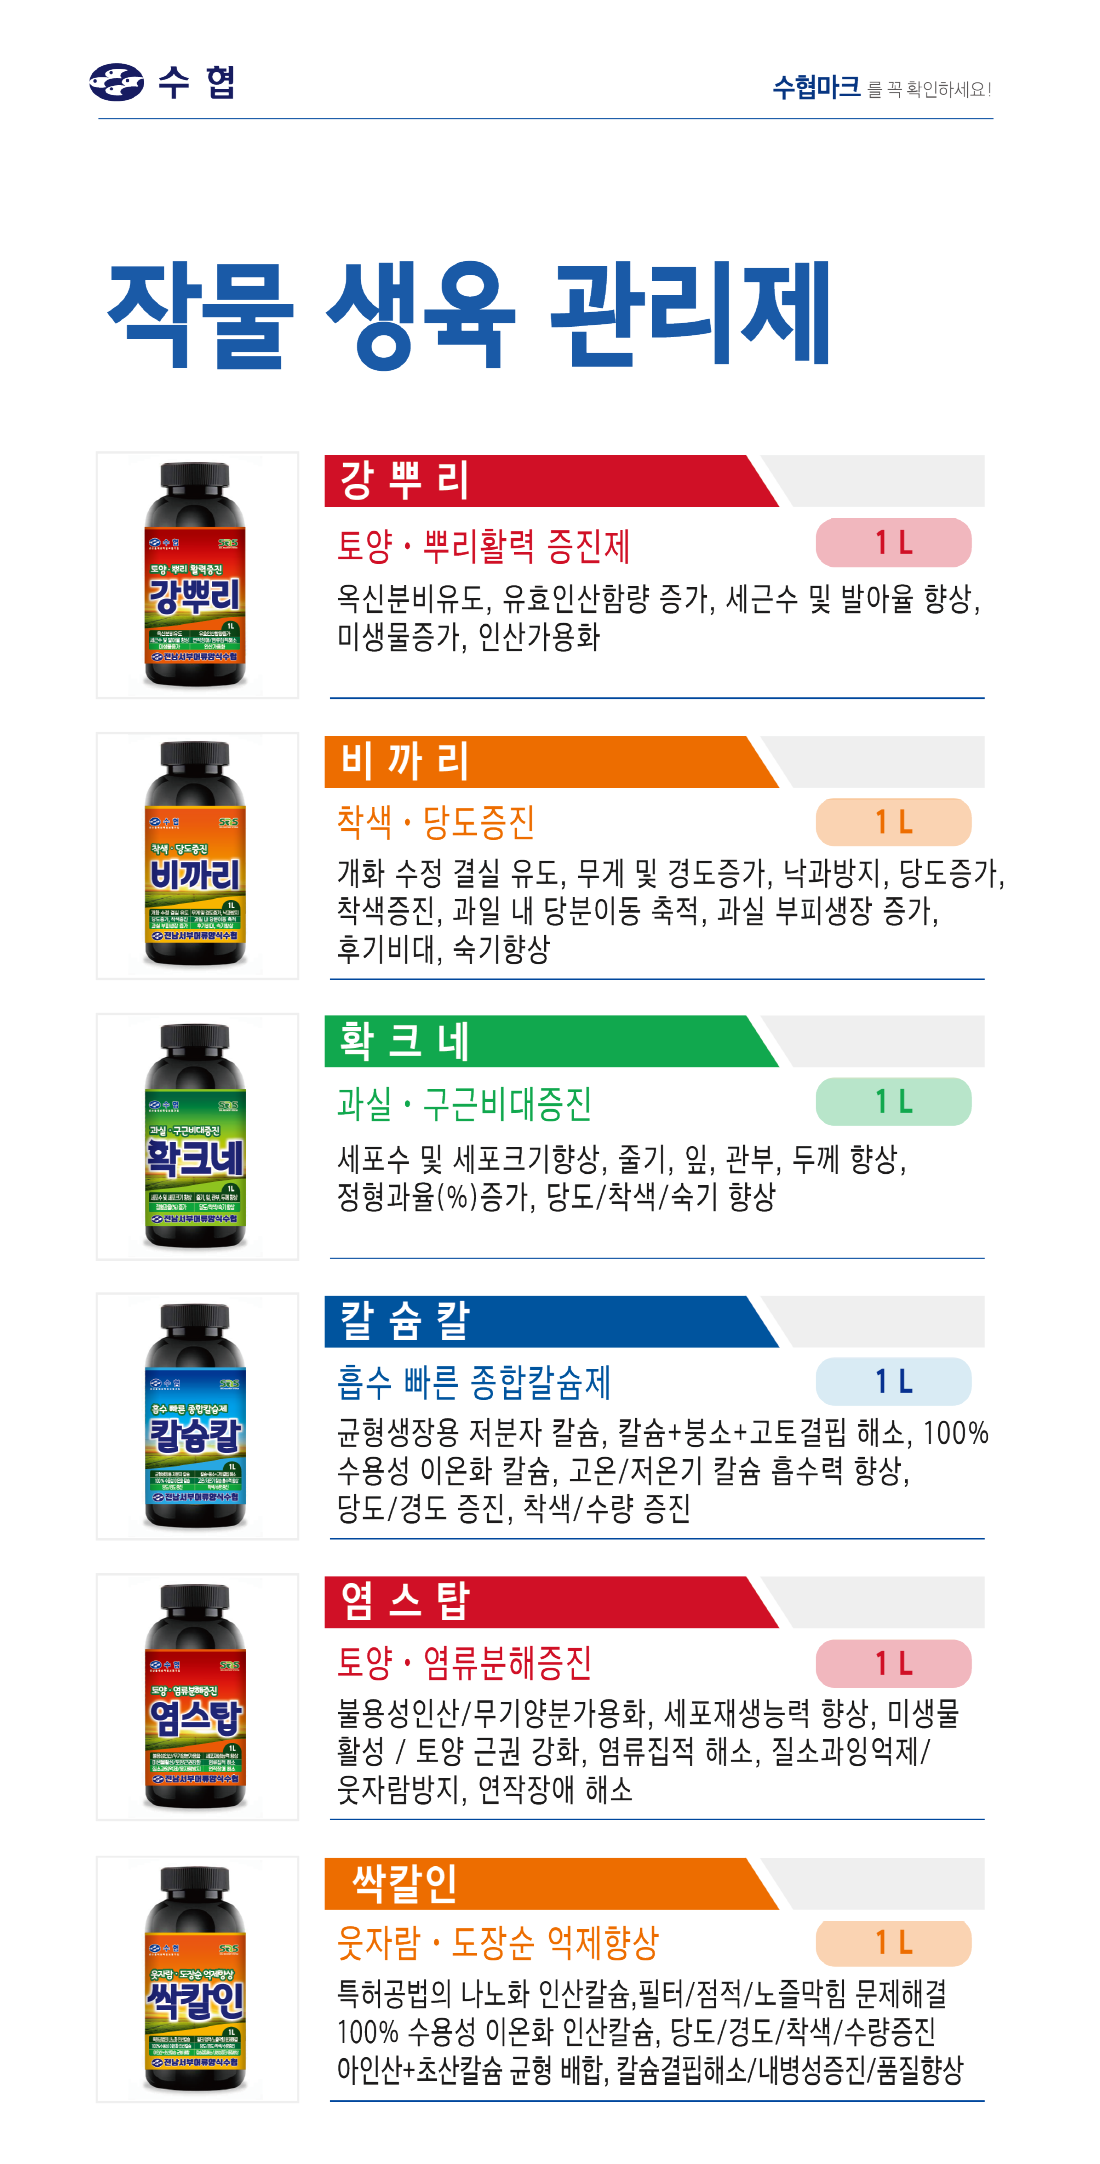 http://suhyup2019.handpr.kr/bs/se2/imgup/1589964617det1_s.png